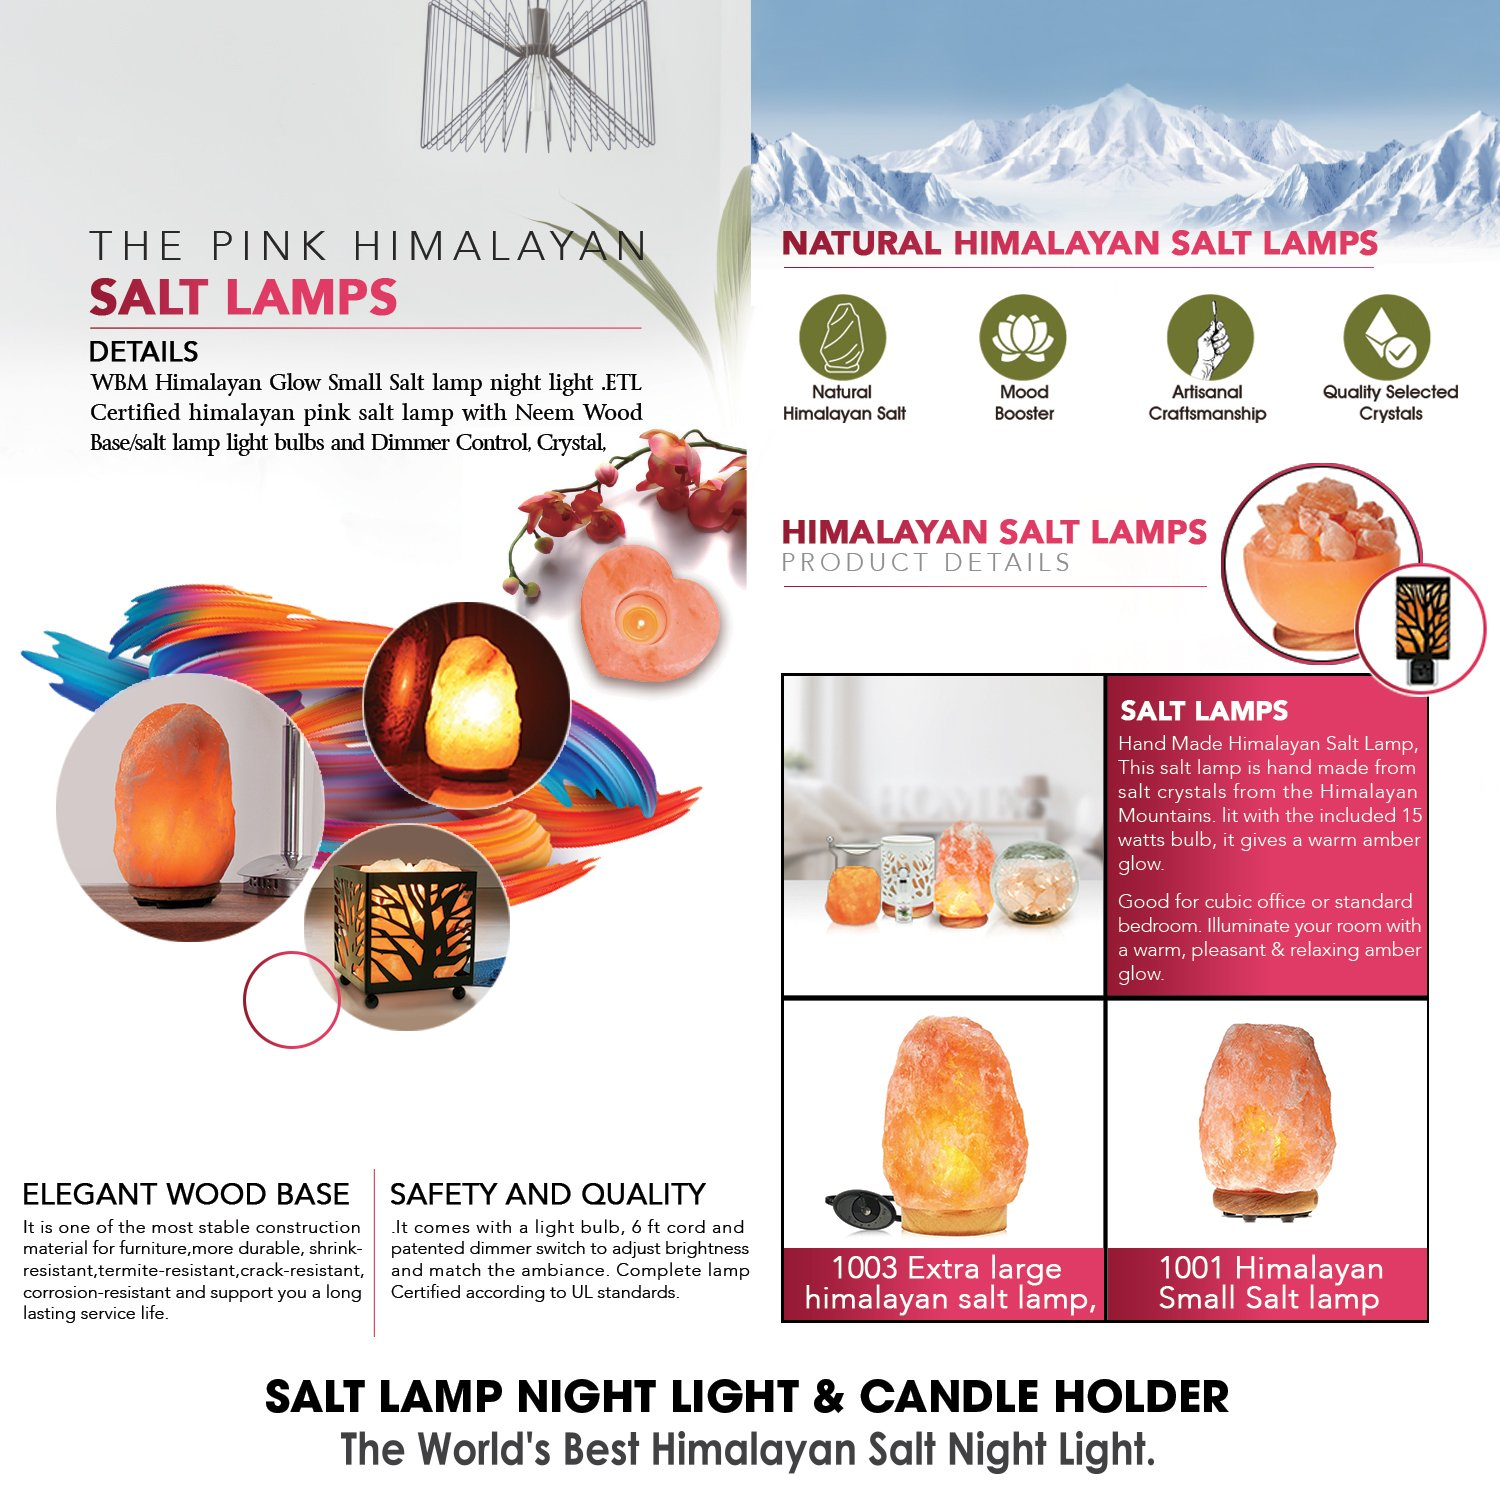 Himalayan Glow Salt Lamp, 1003 Extra large himalayan salt lamp, Dimmable Floor lamp with Neem Wooden base   11 to 15 lbs by WBM by Himalayan Glow (Image #8)